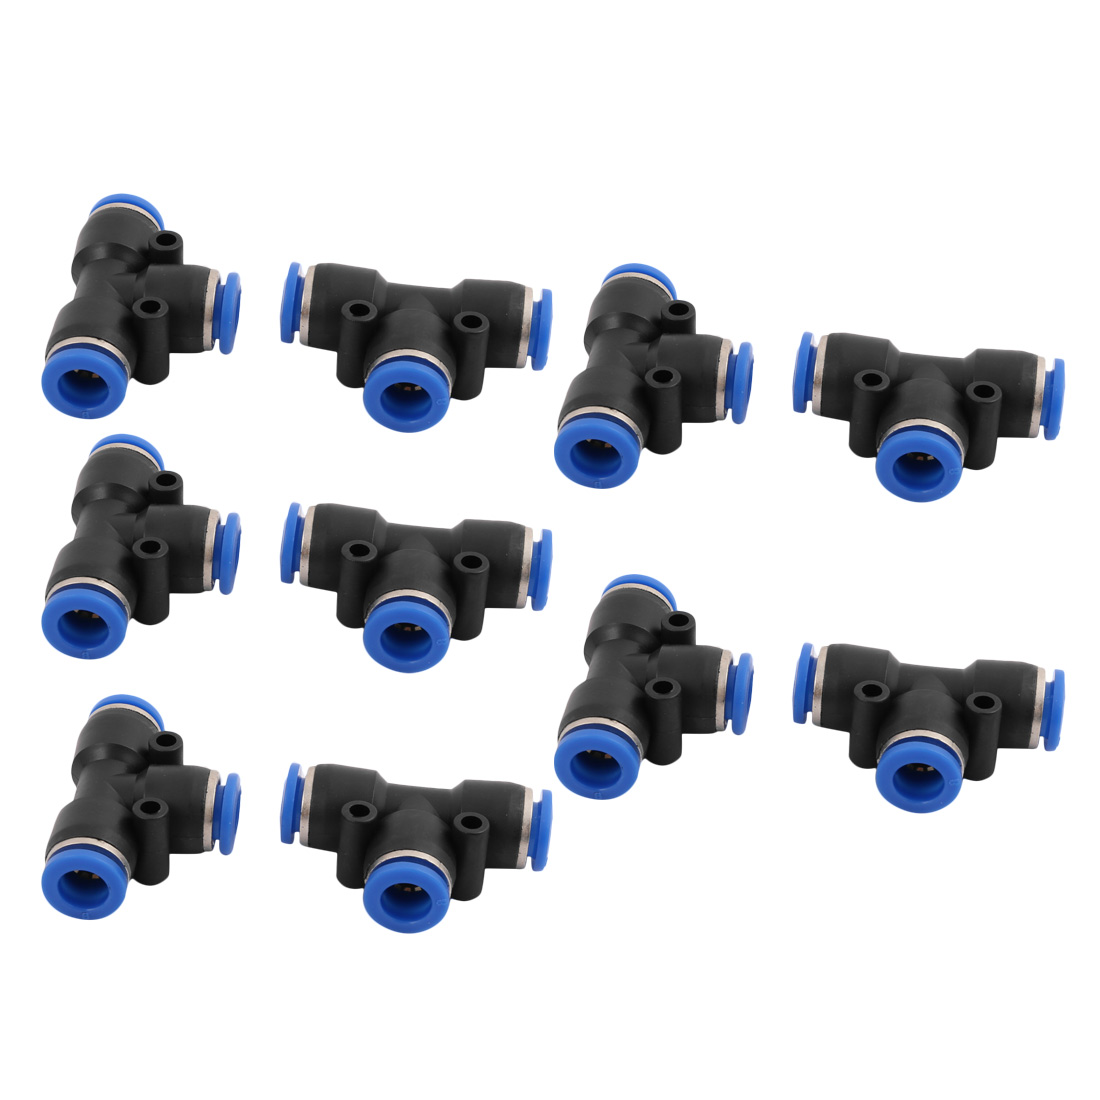 10Pcs 8mm Dia T 3 Ways Type Tube Hose Pneumatic Air Quick Fitting Push In Connector